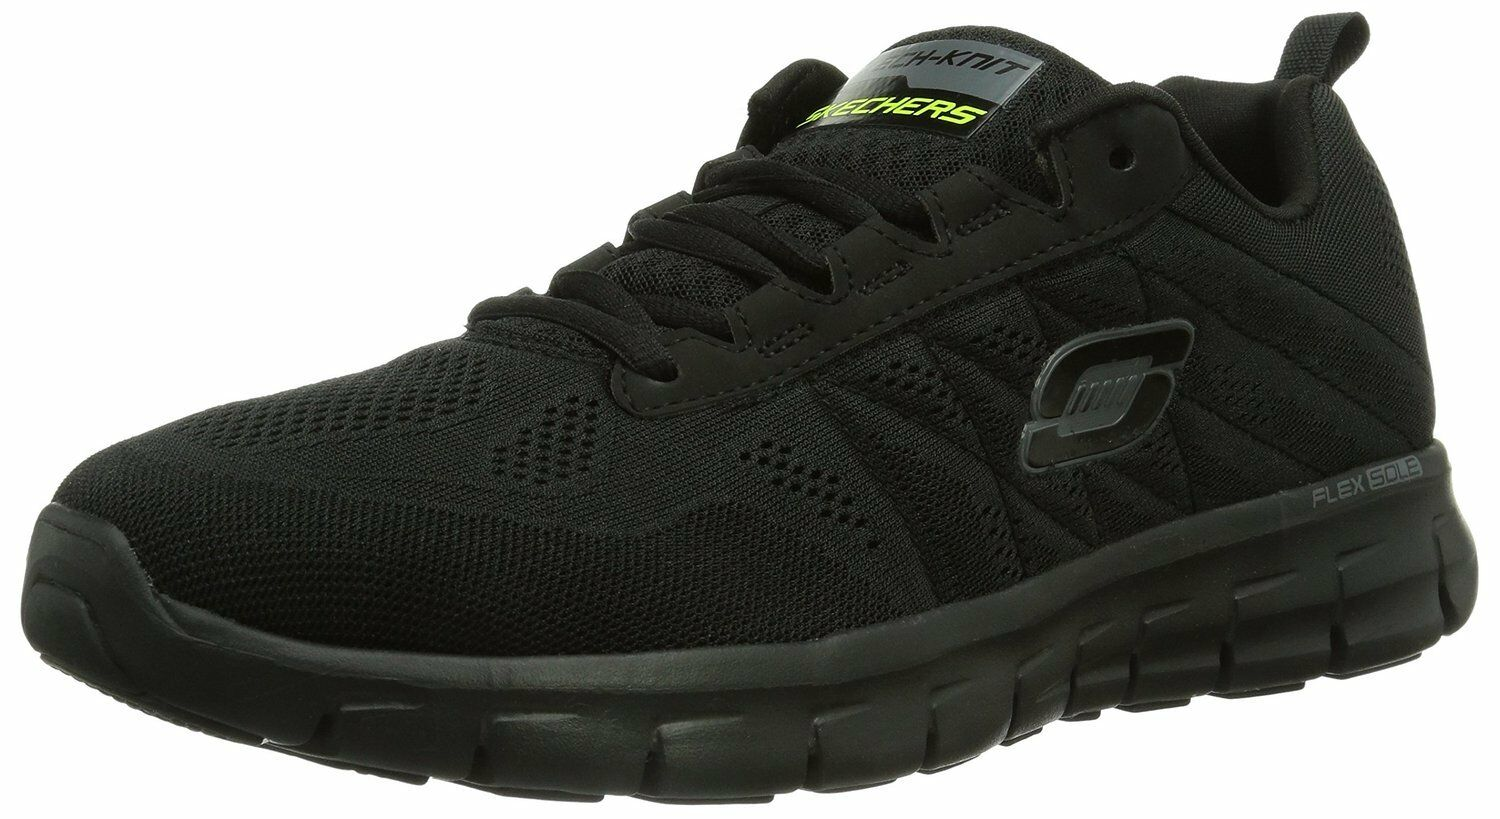 SKECHERS USA Inc 51188 Skechers Mens Synergy-Power Switch Running shoes